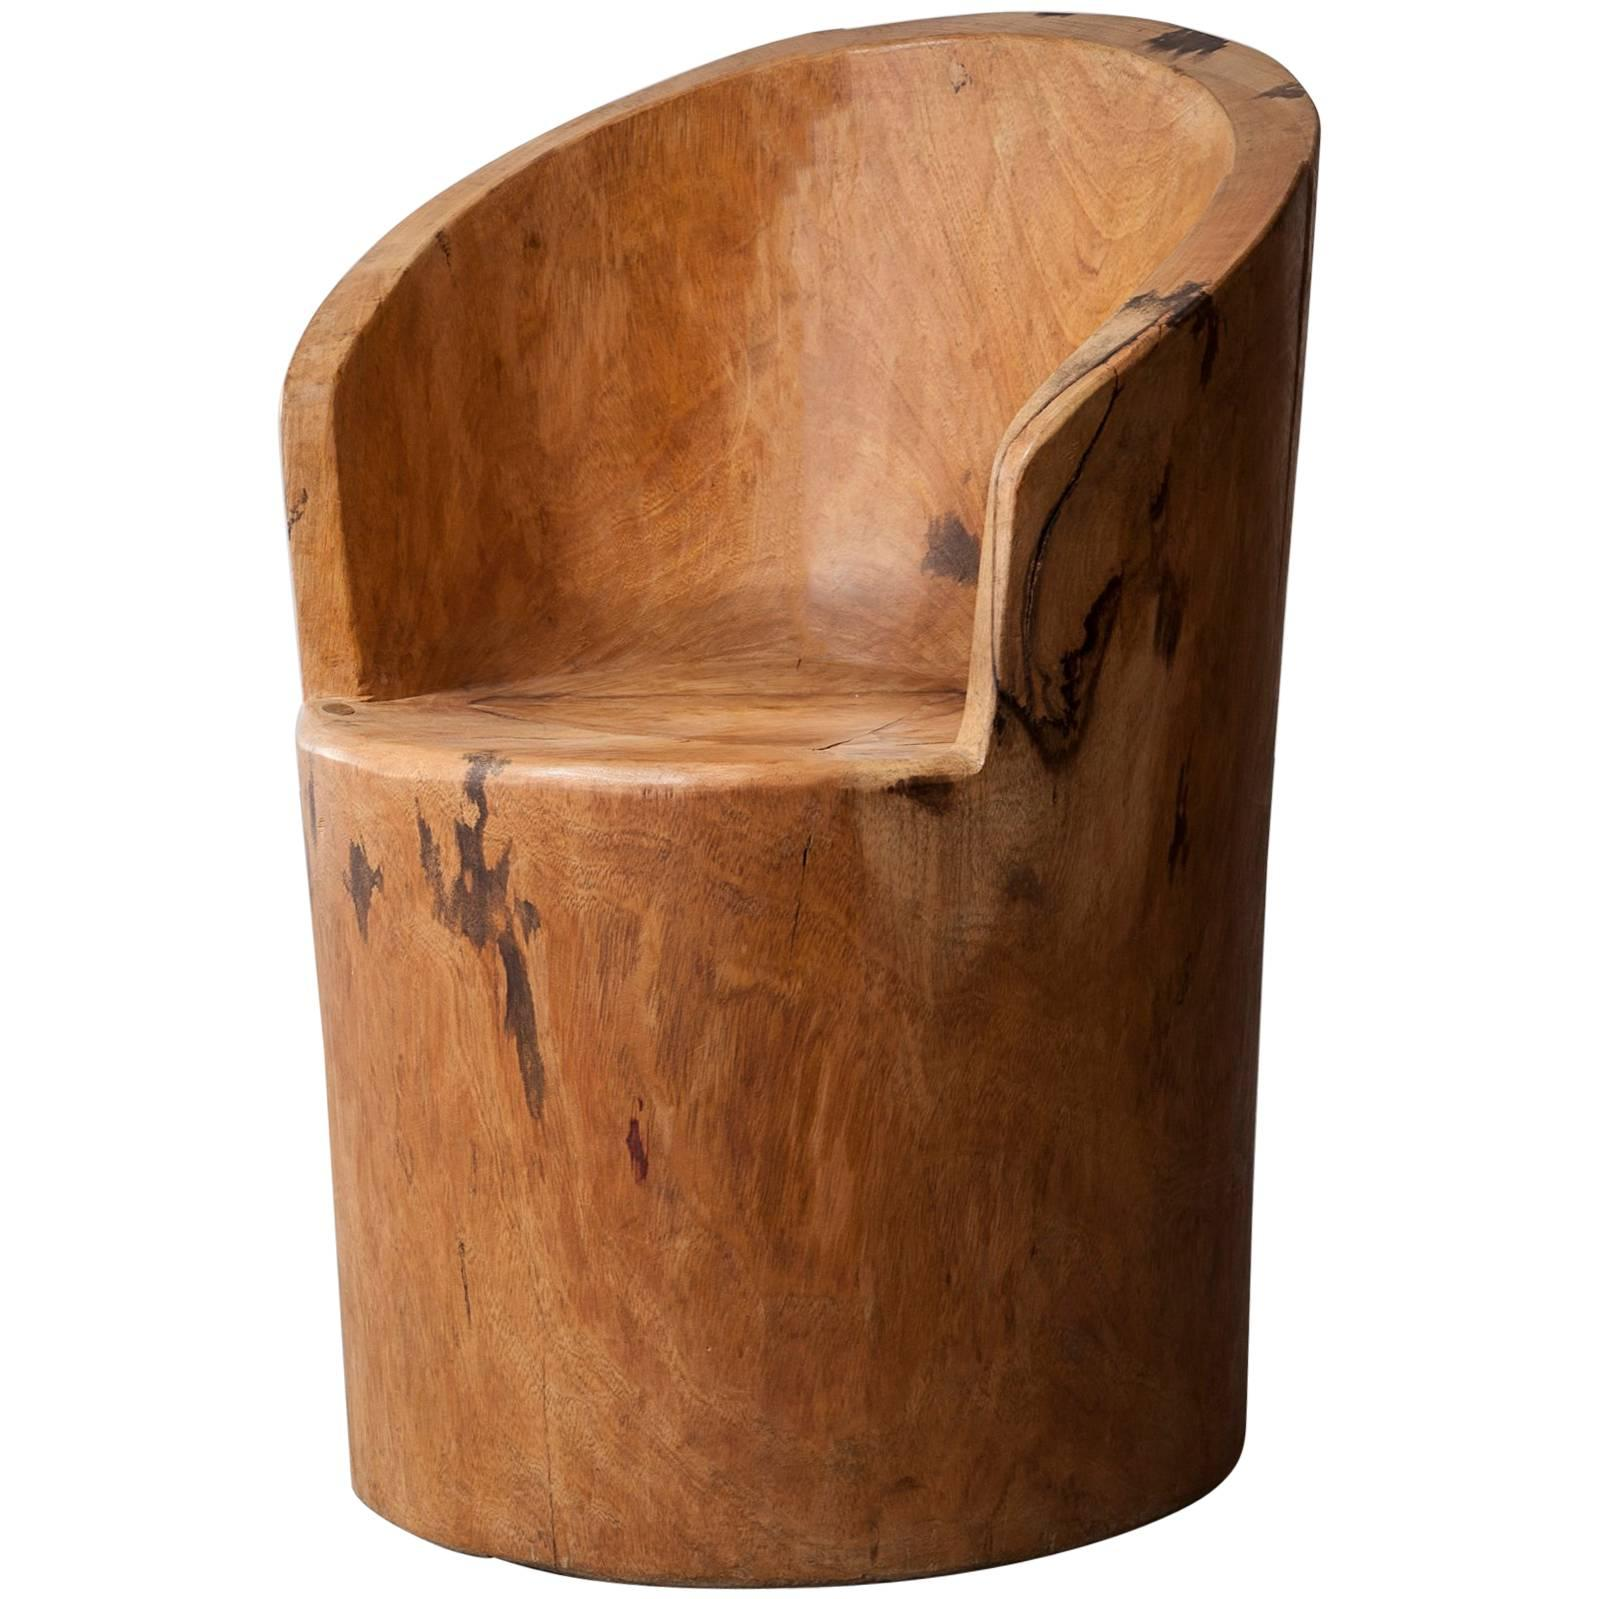 Sculpted Solid Wood Chair